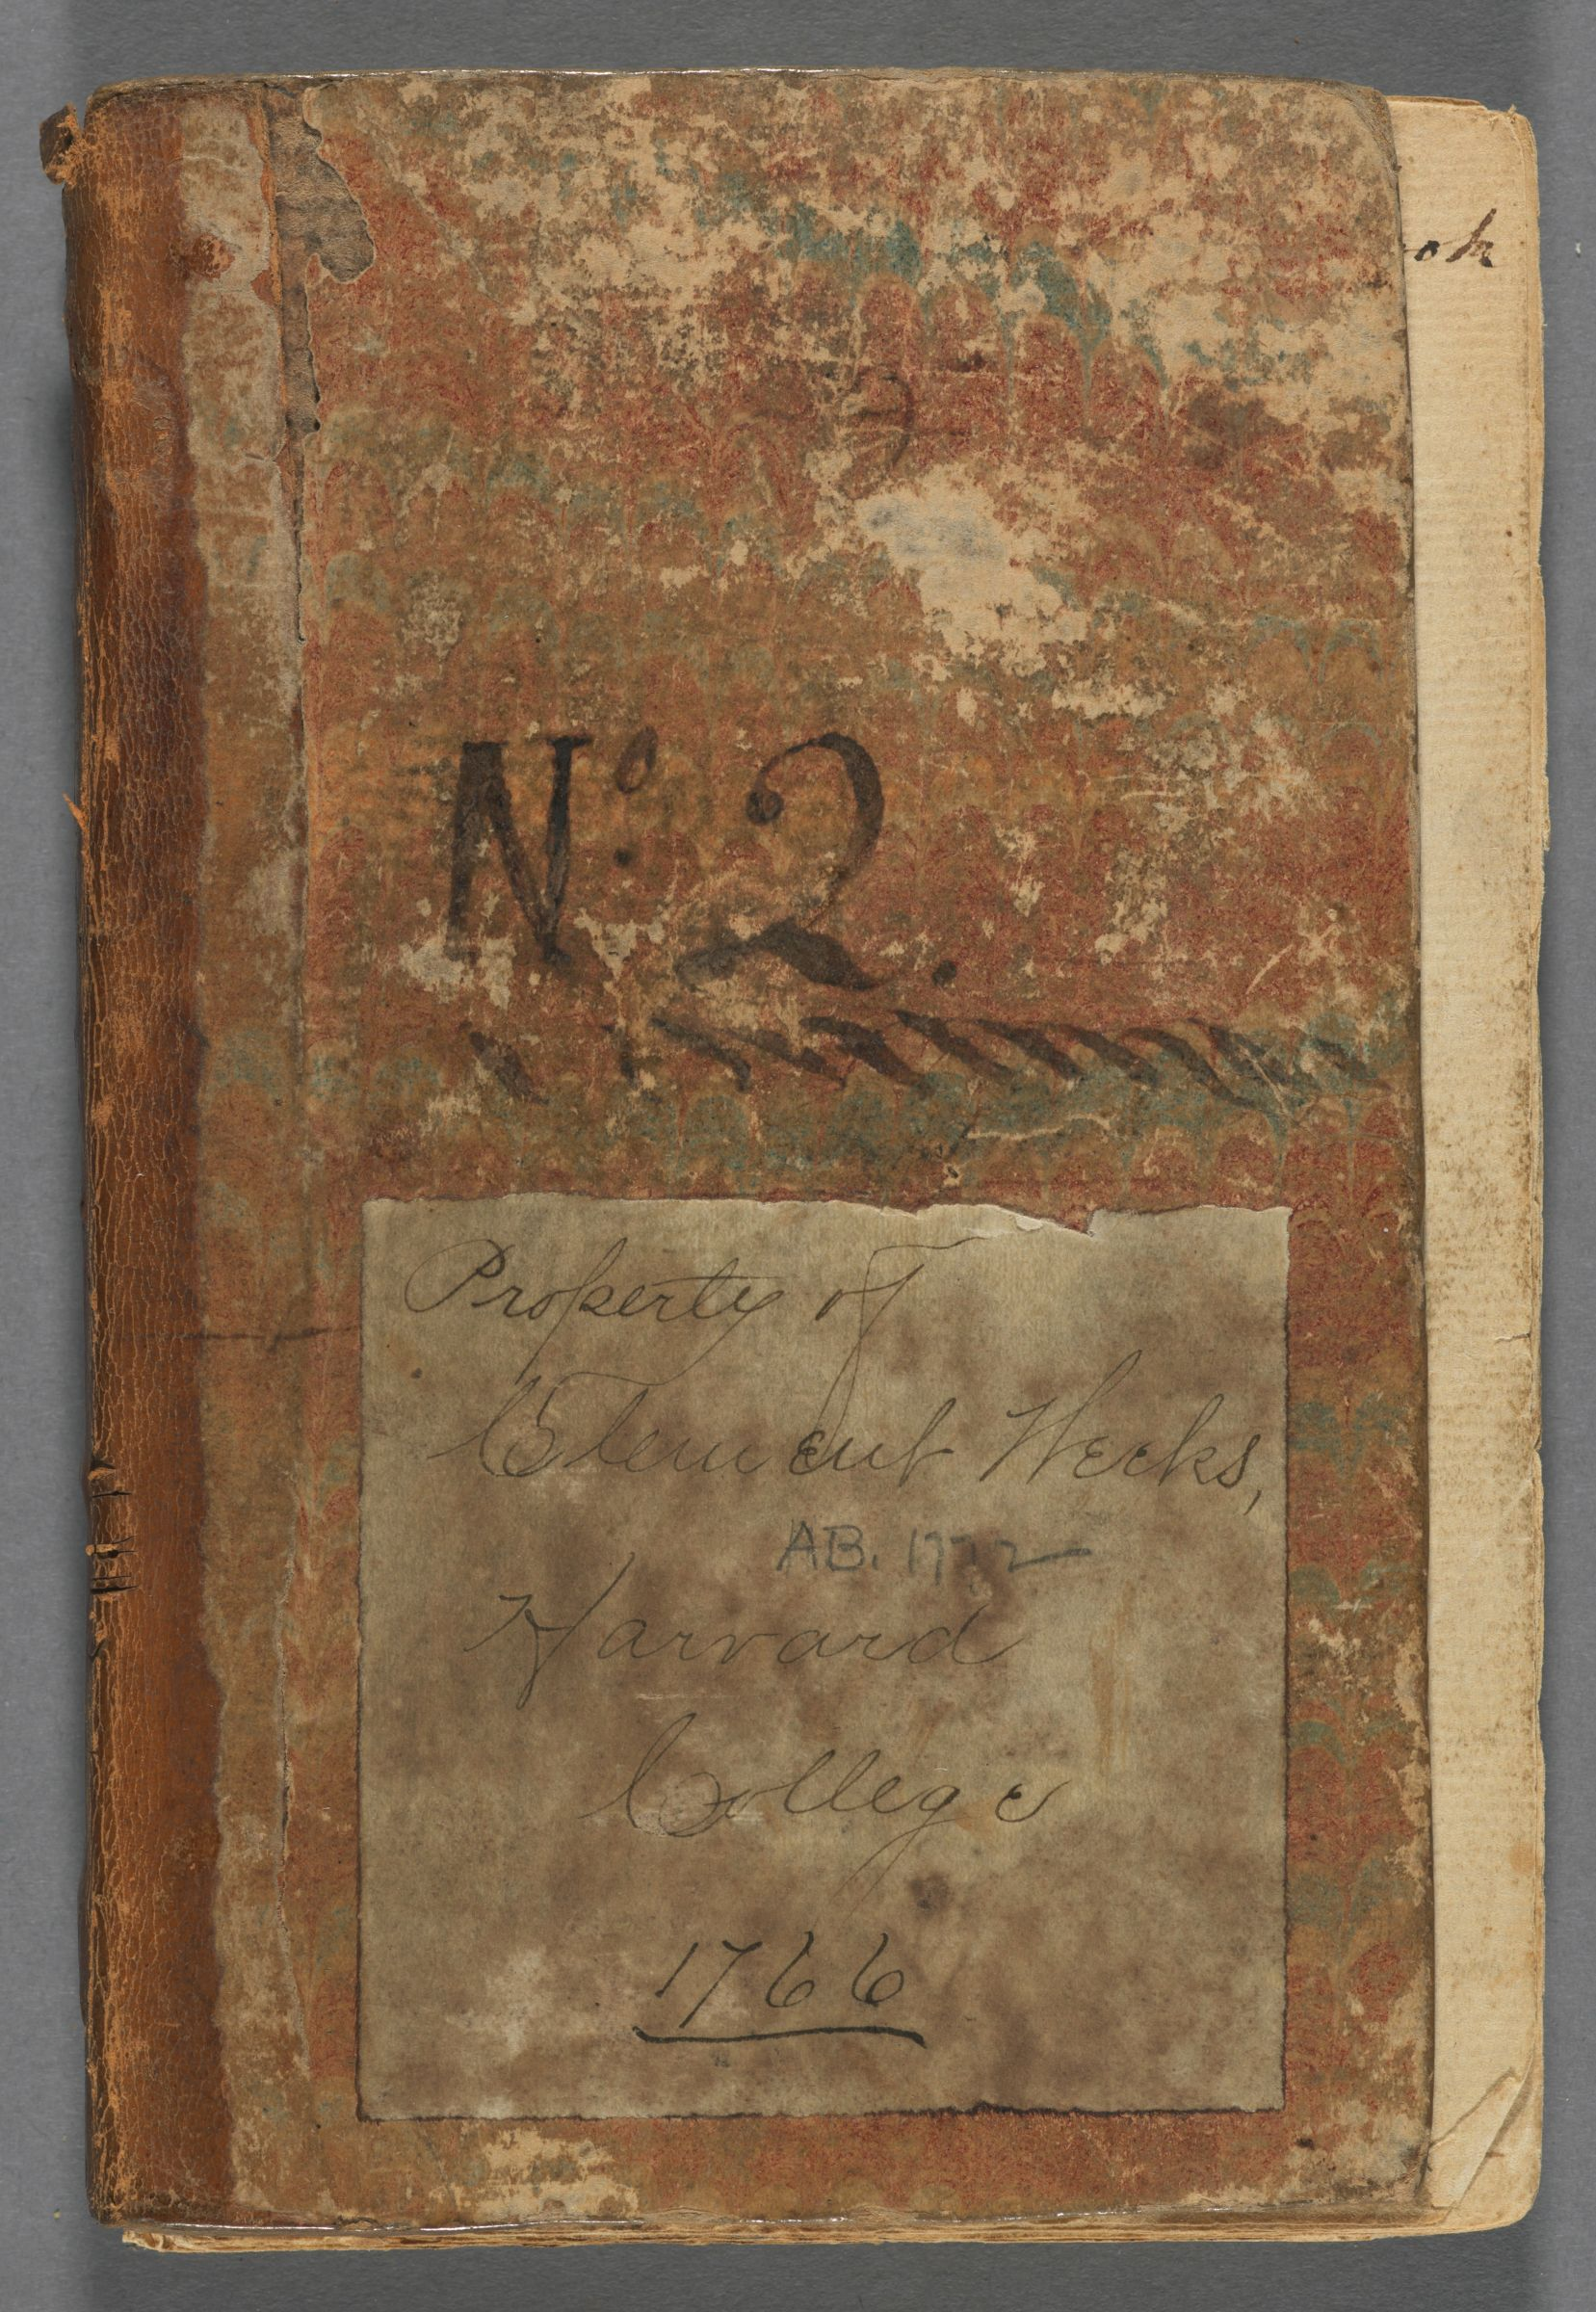 Commonplace book of Clement Weeks